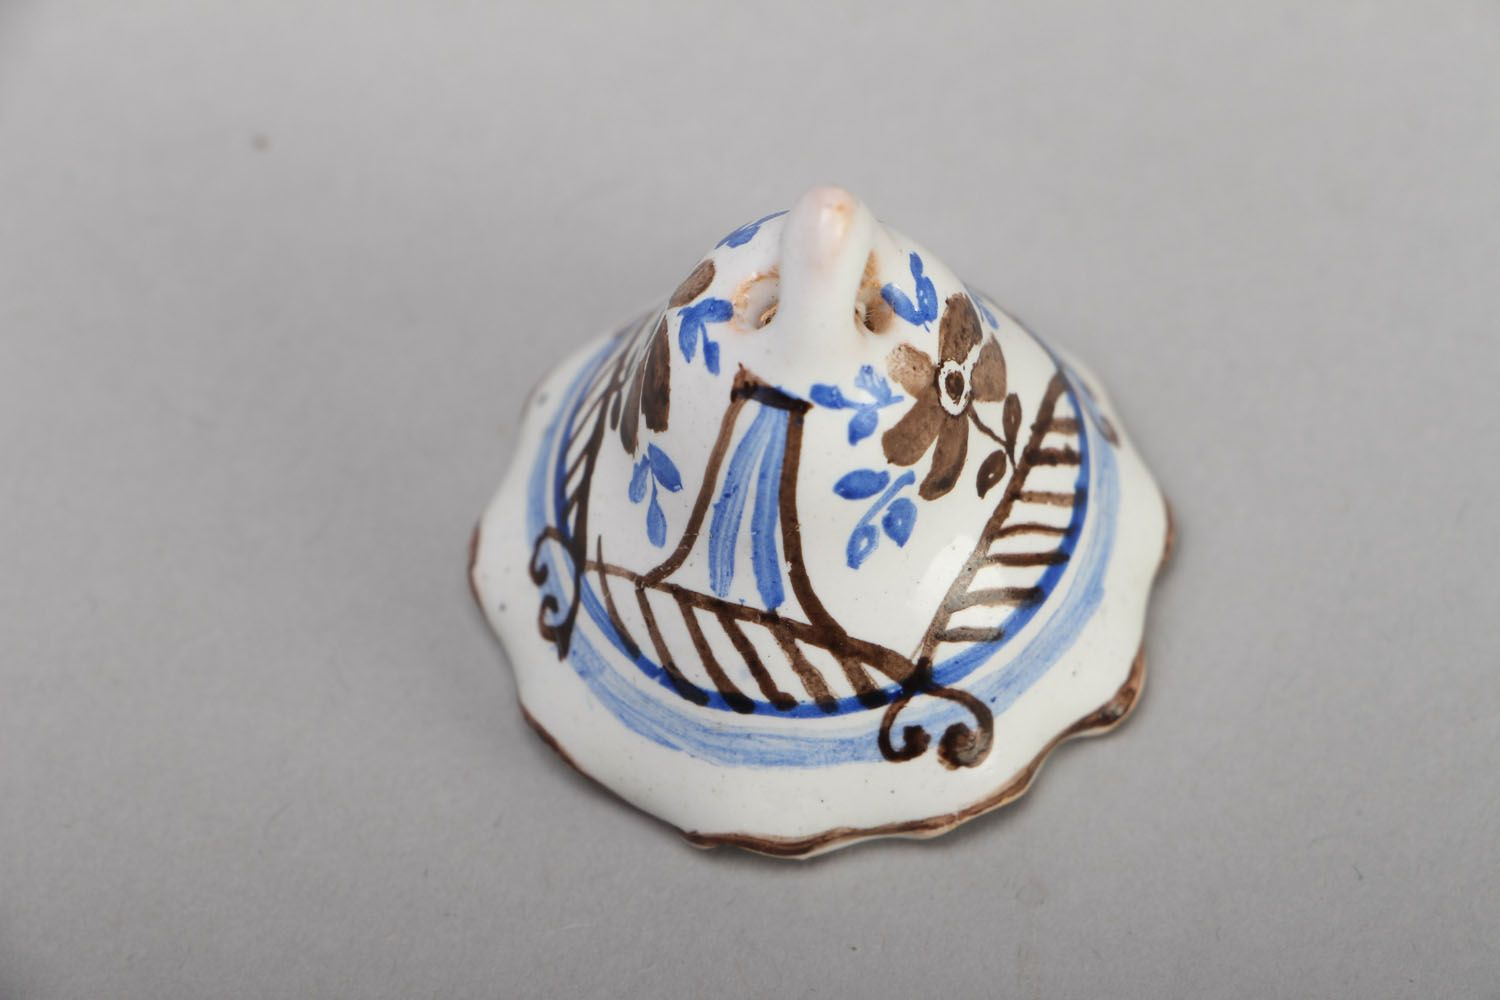 Painted ceramic bell photo 2